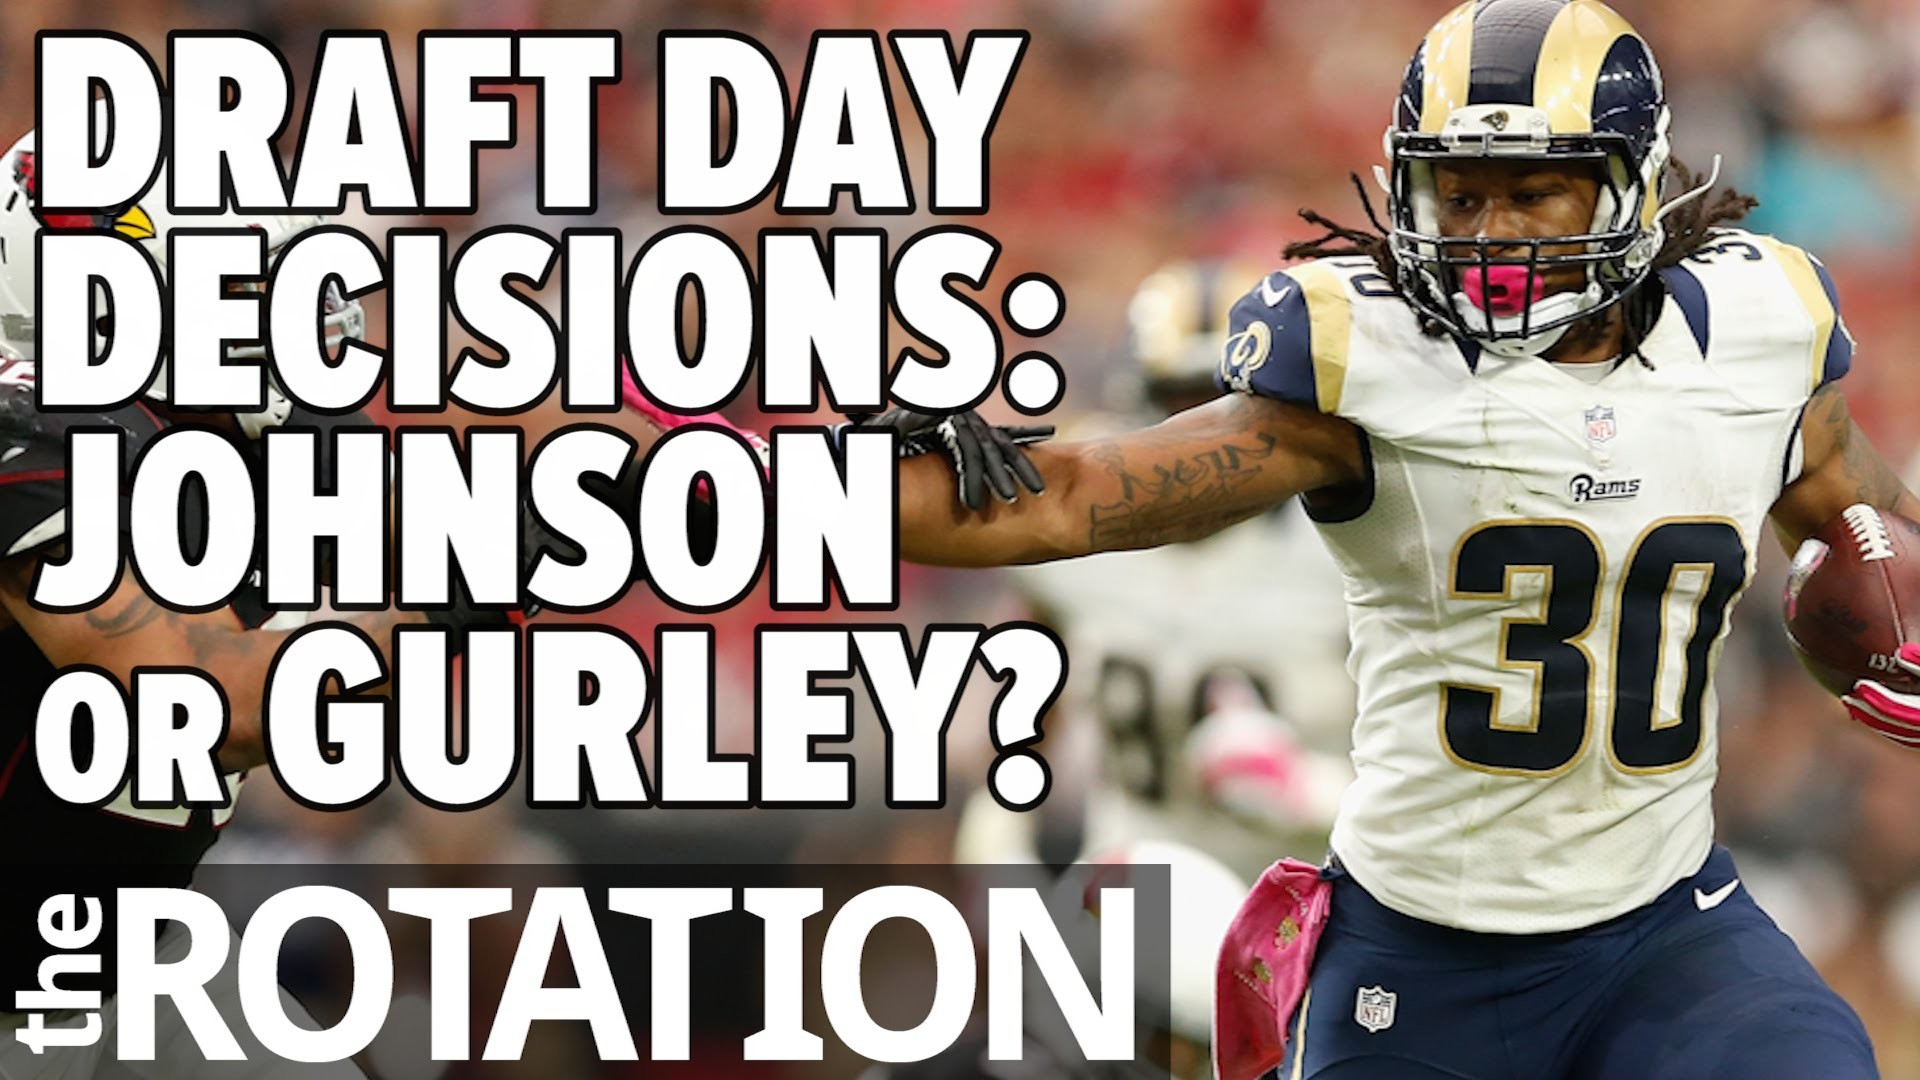 1920x1080 2016 Fantasy Football - Draft Day Decisions: Todd Gurley or David Johnson |  The Rotation